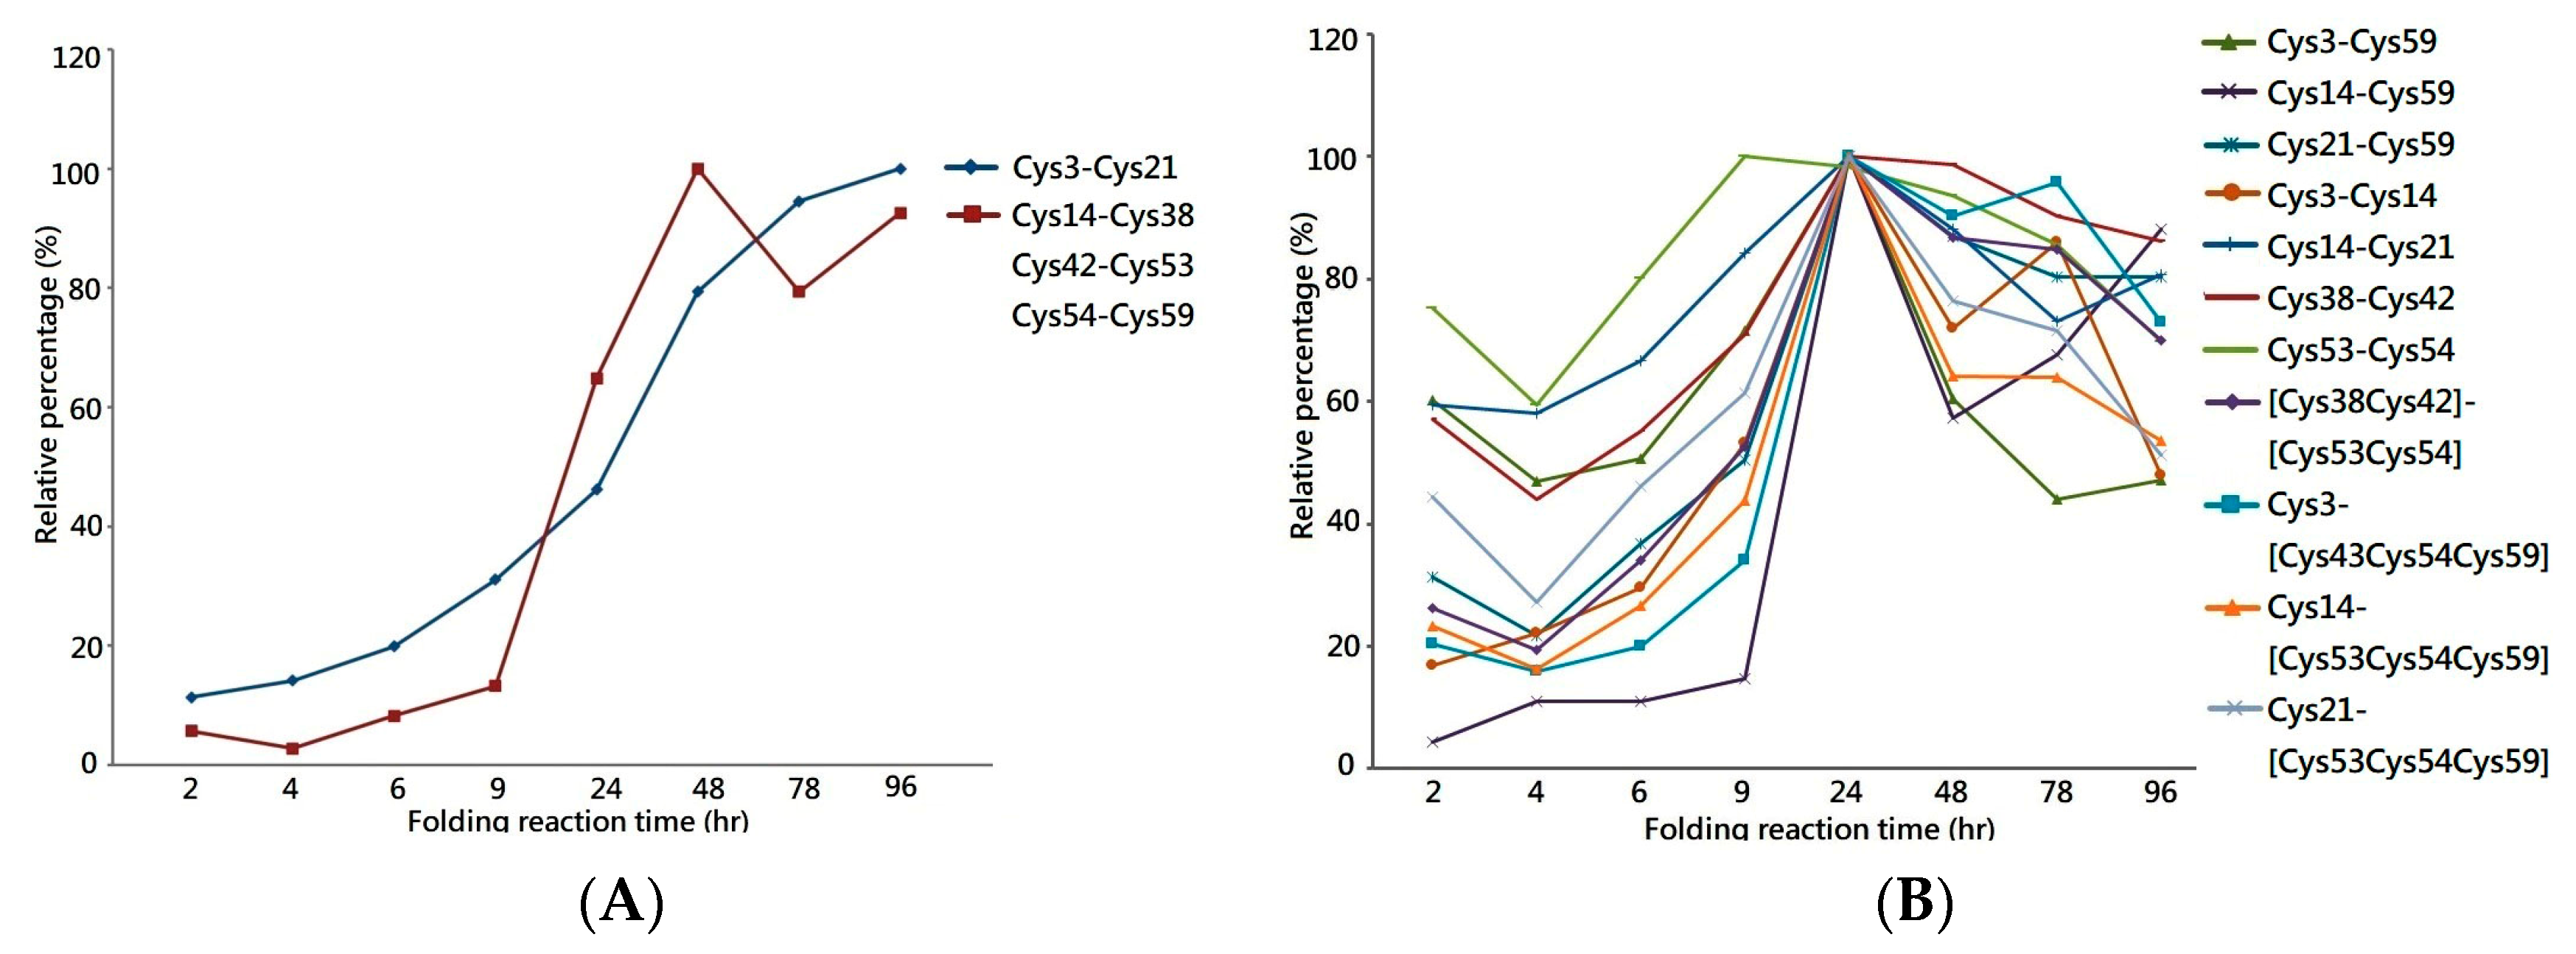 toxins 11 00052 g003 toxins free full text monitoring the disulfide bonds of folding